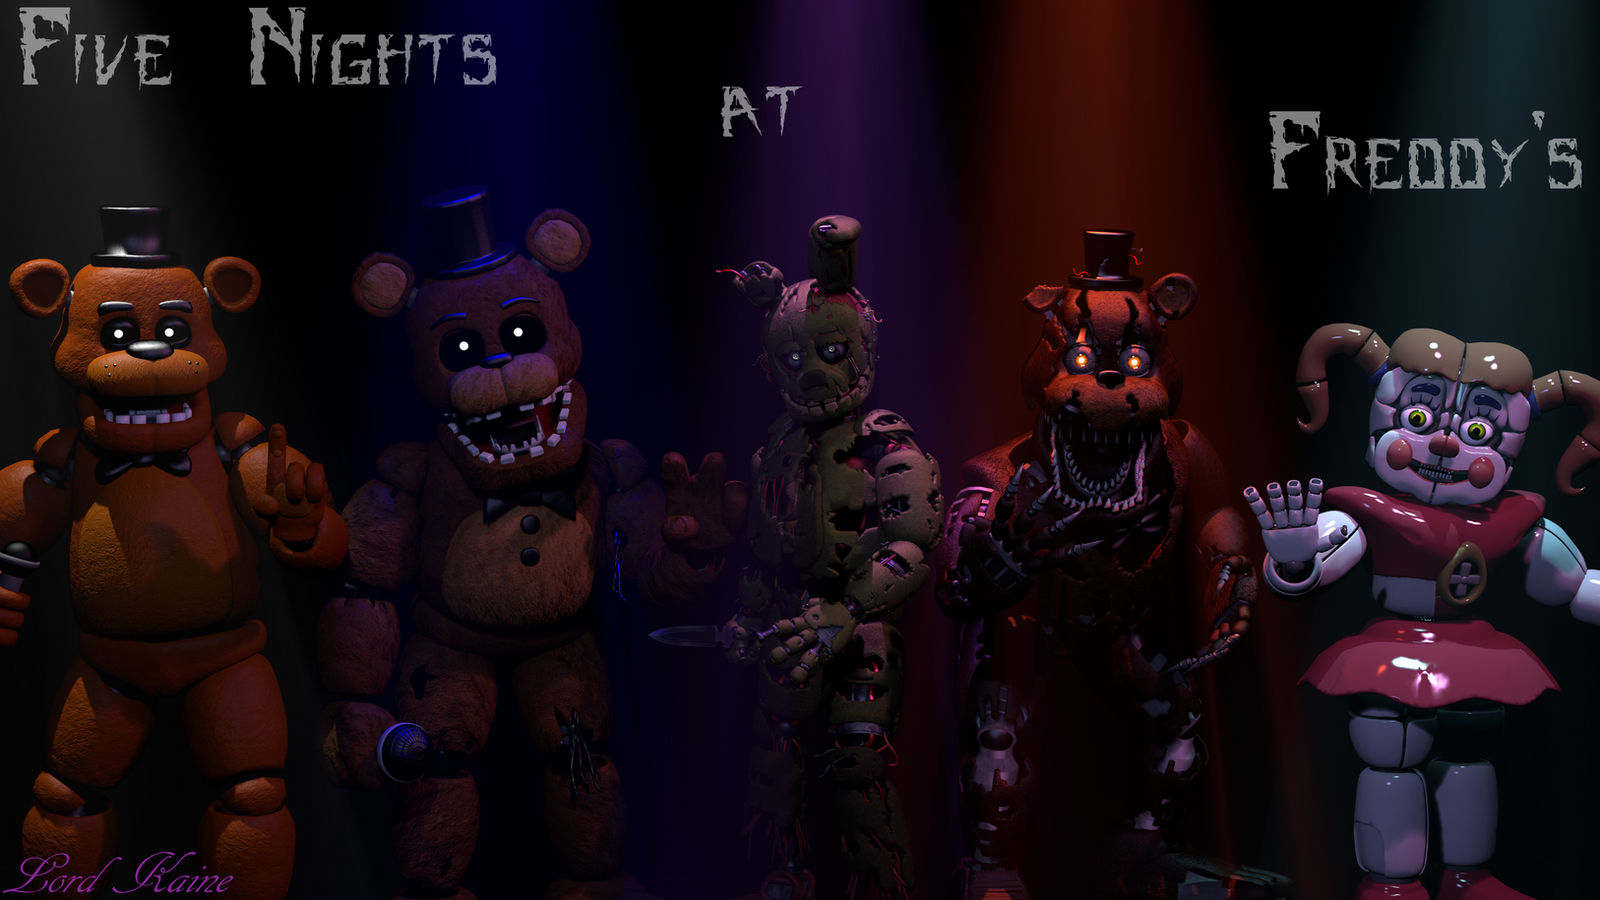 Five Nights At Freddy S Wallpaper By Lord Kaine On Deviantart